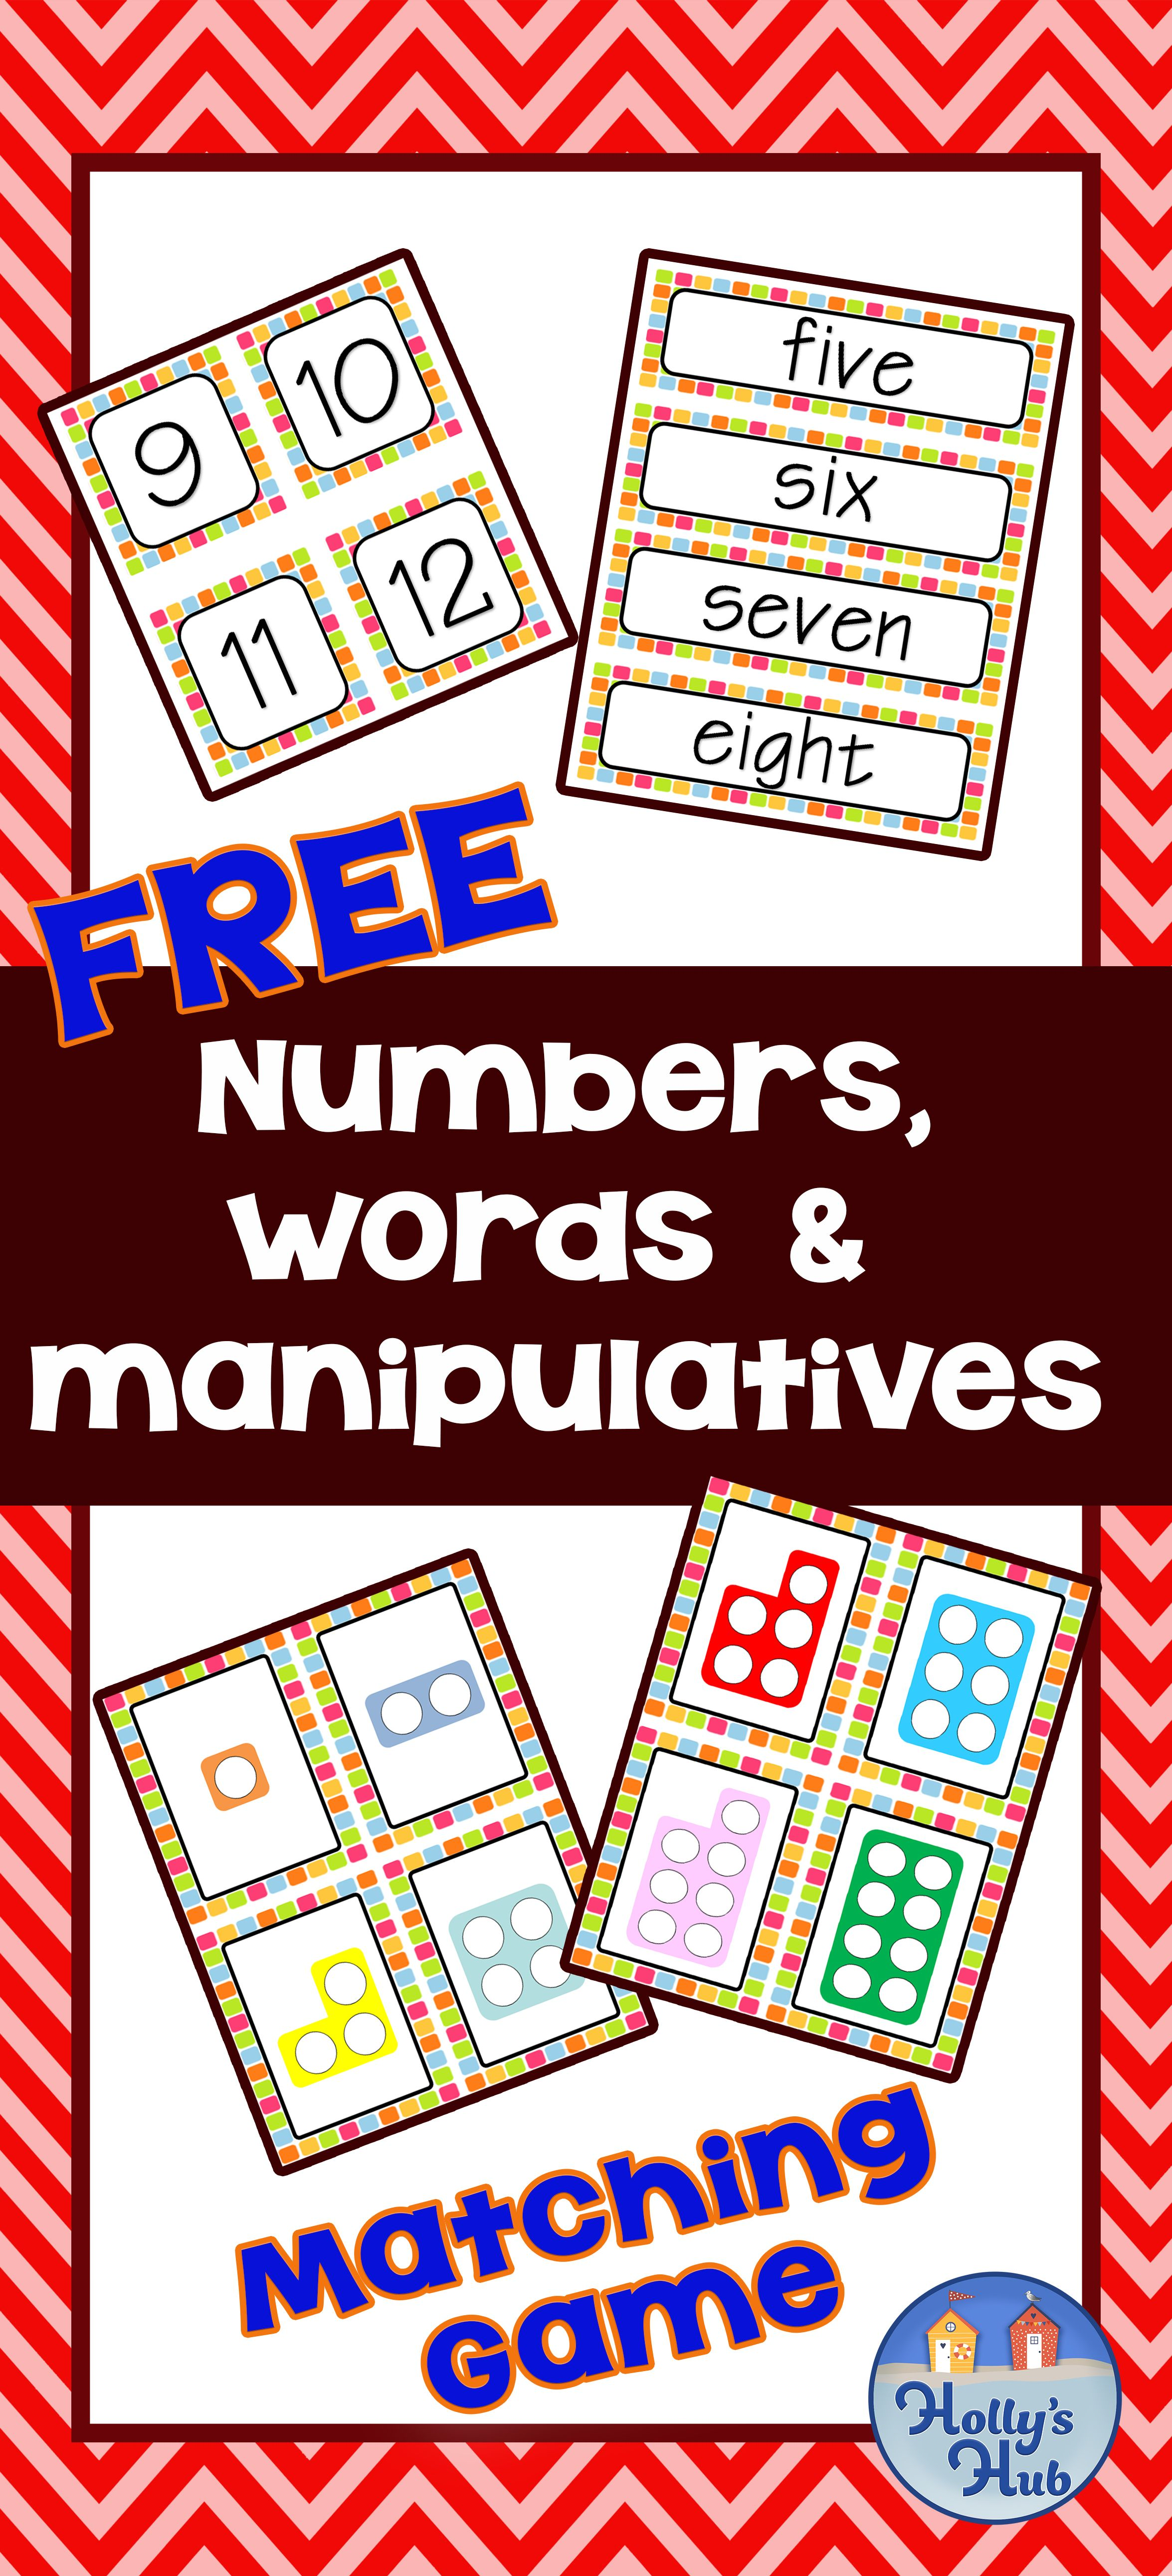 Free numbers words manipulatives matching card game